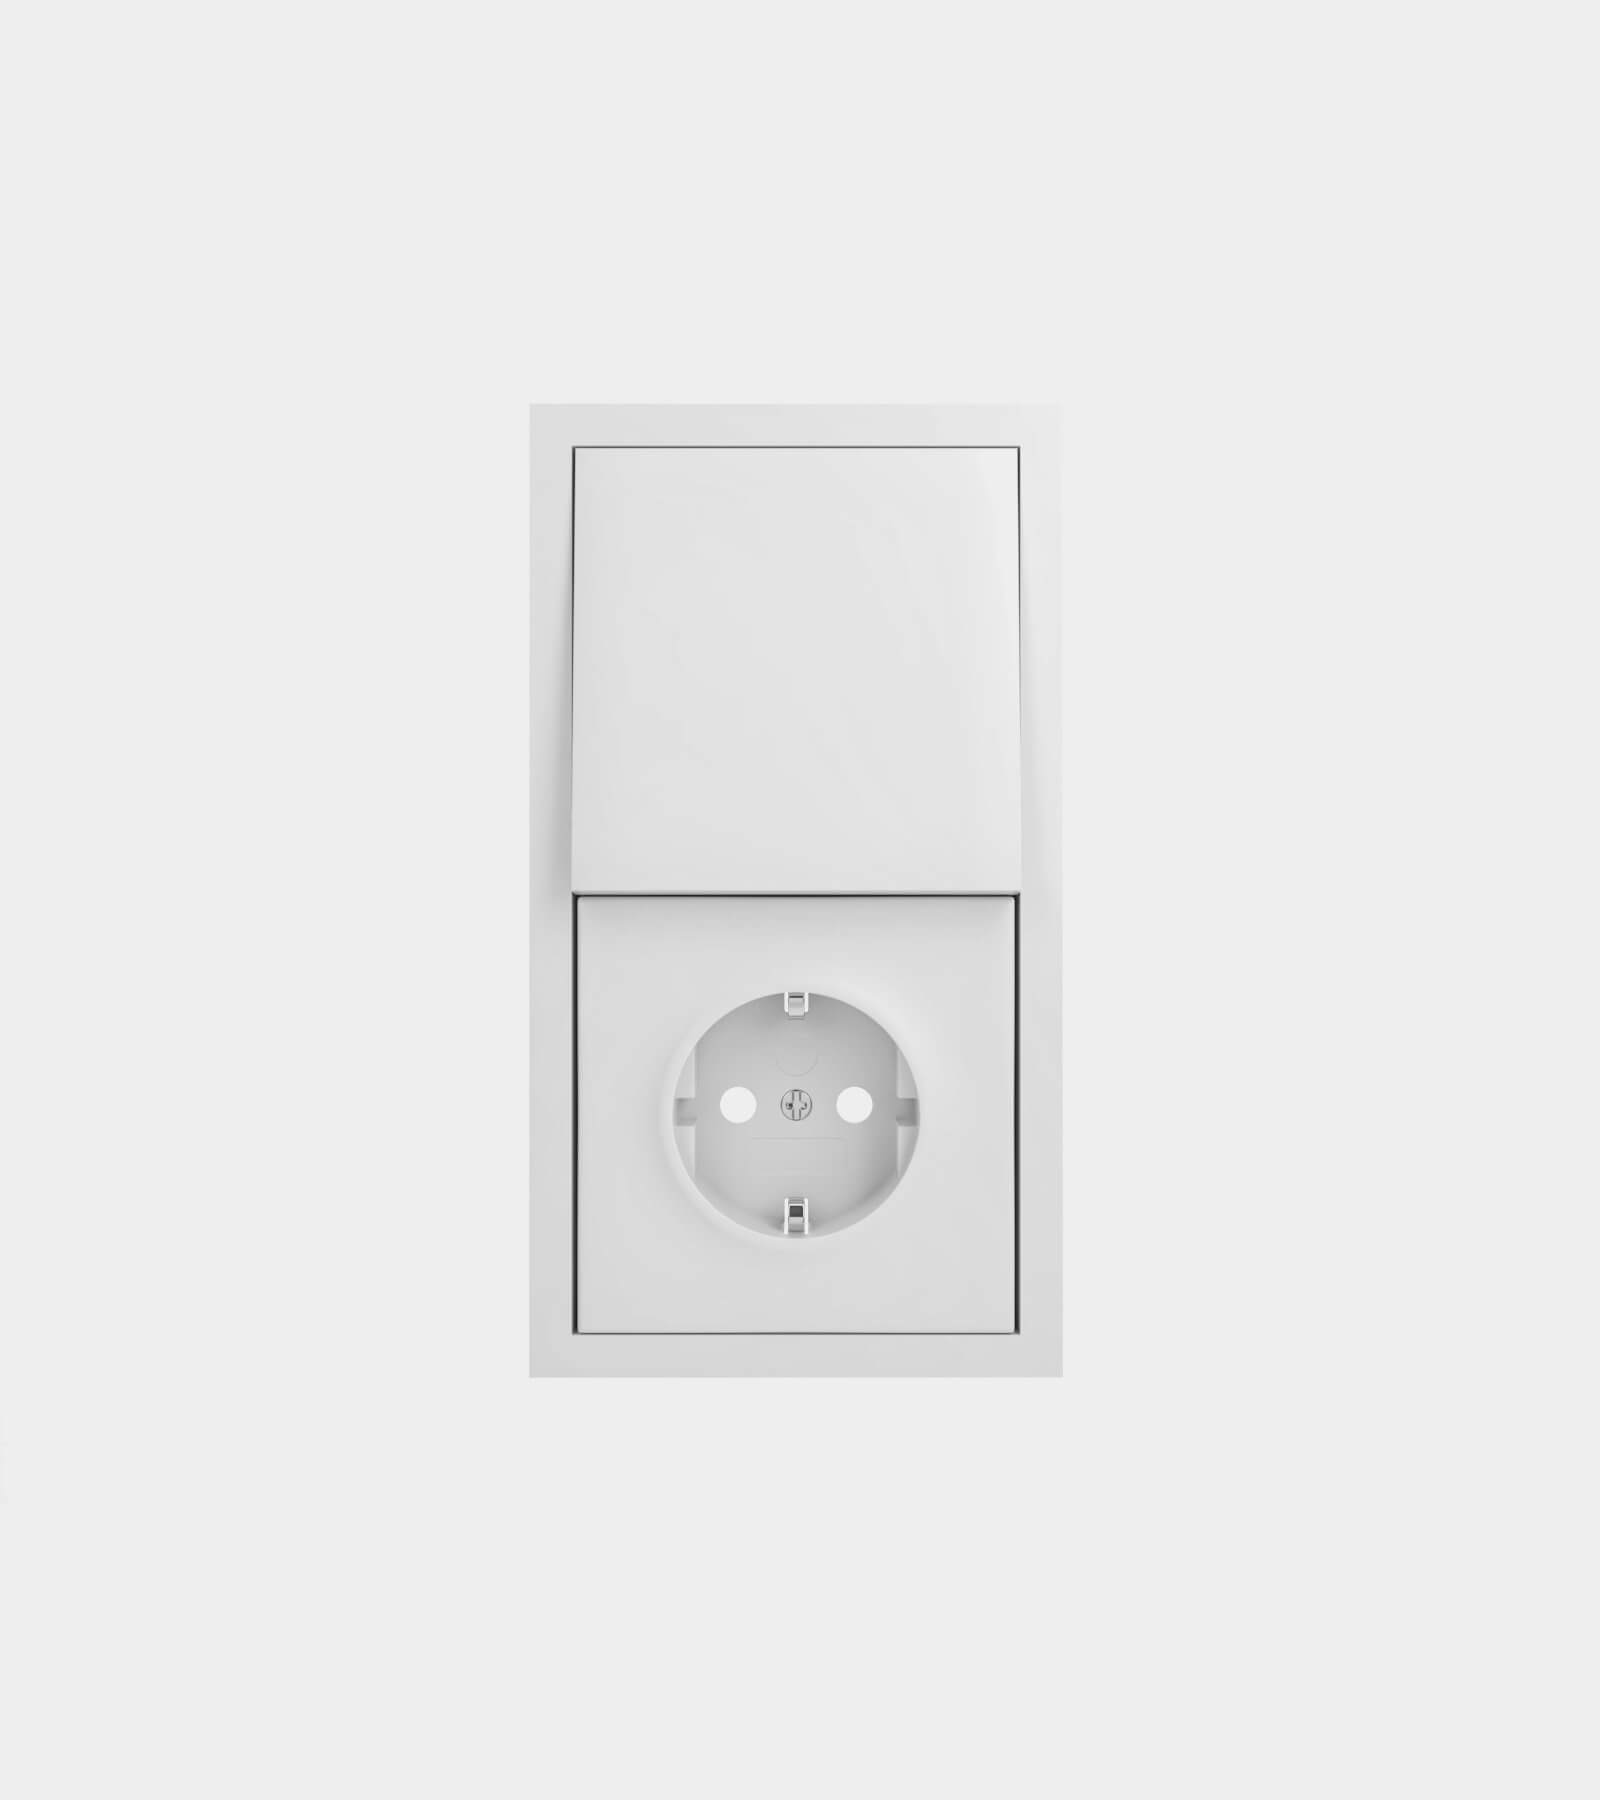 Socket with light switch - 3D Model